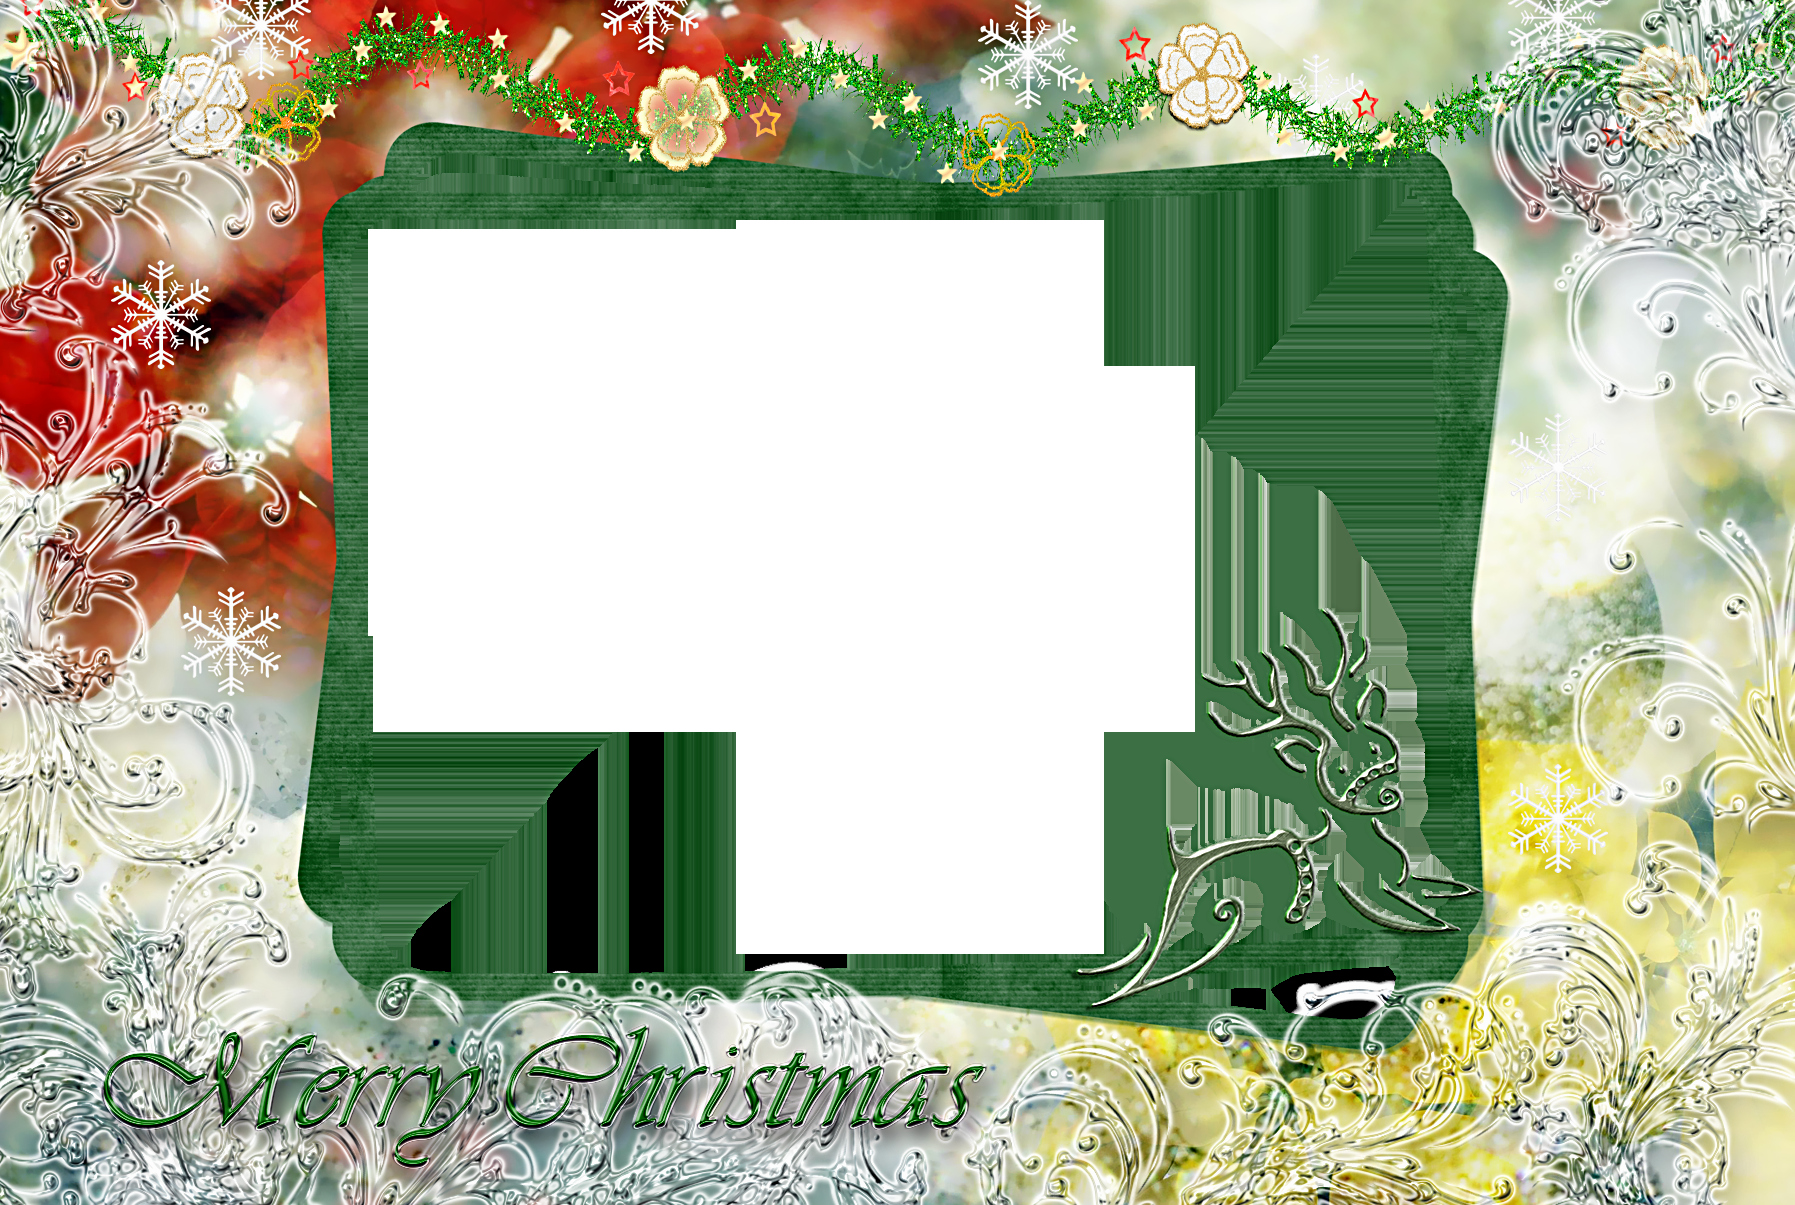 Photoshop Picture Frame Template Lovely 9 Christmas Frame Psd Template Christmas